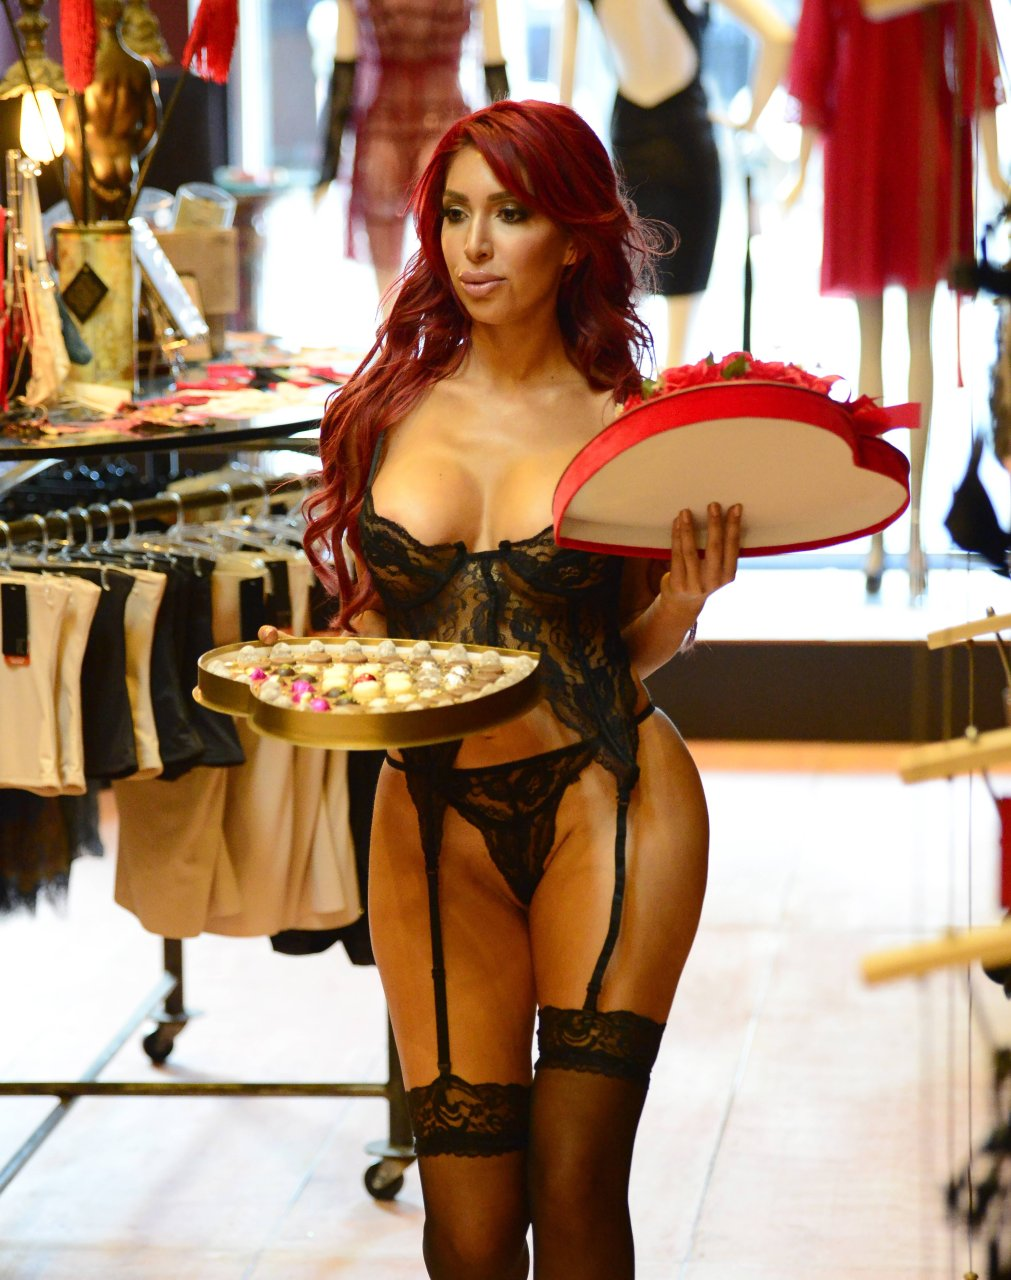 Farrah-Abraham-See-Through-13-The-Fappening-Blog.jpg